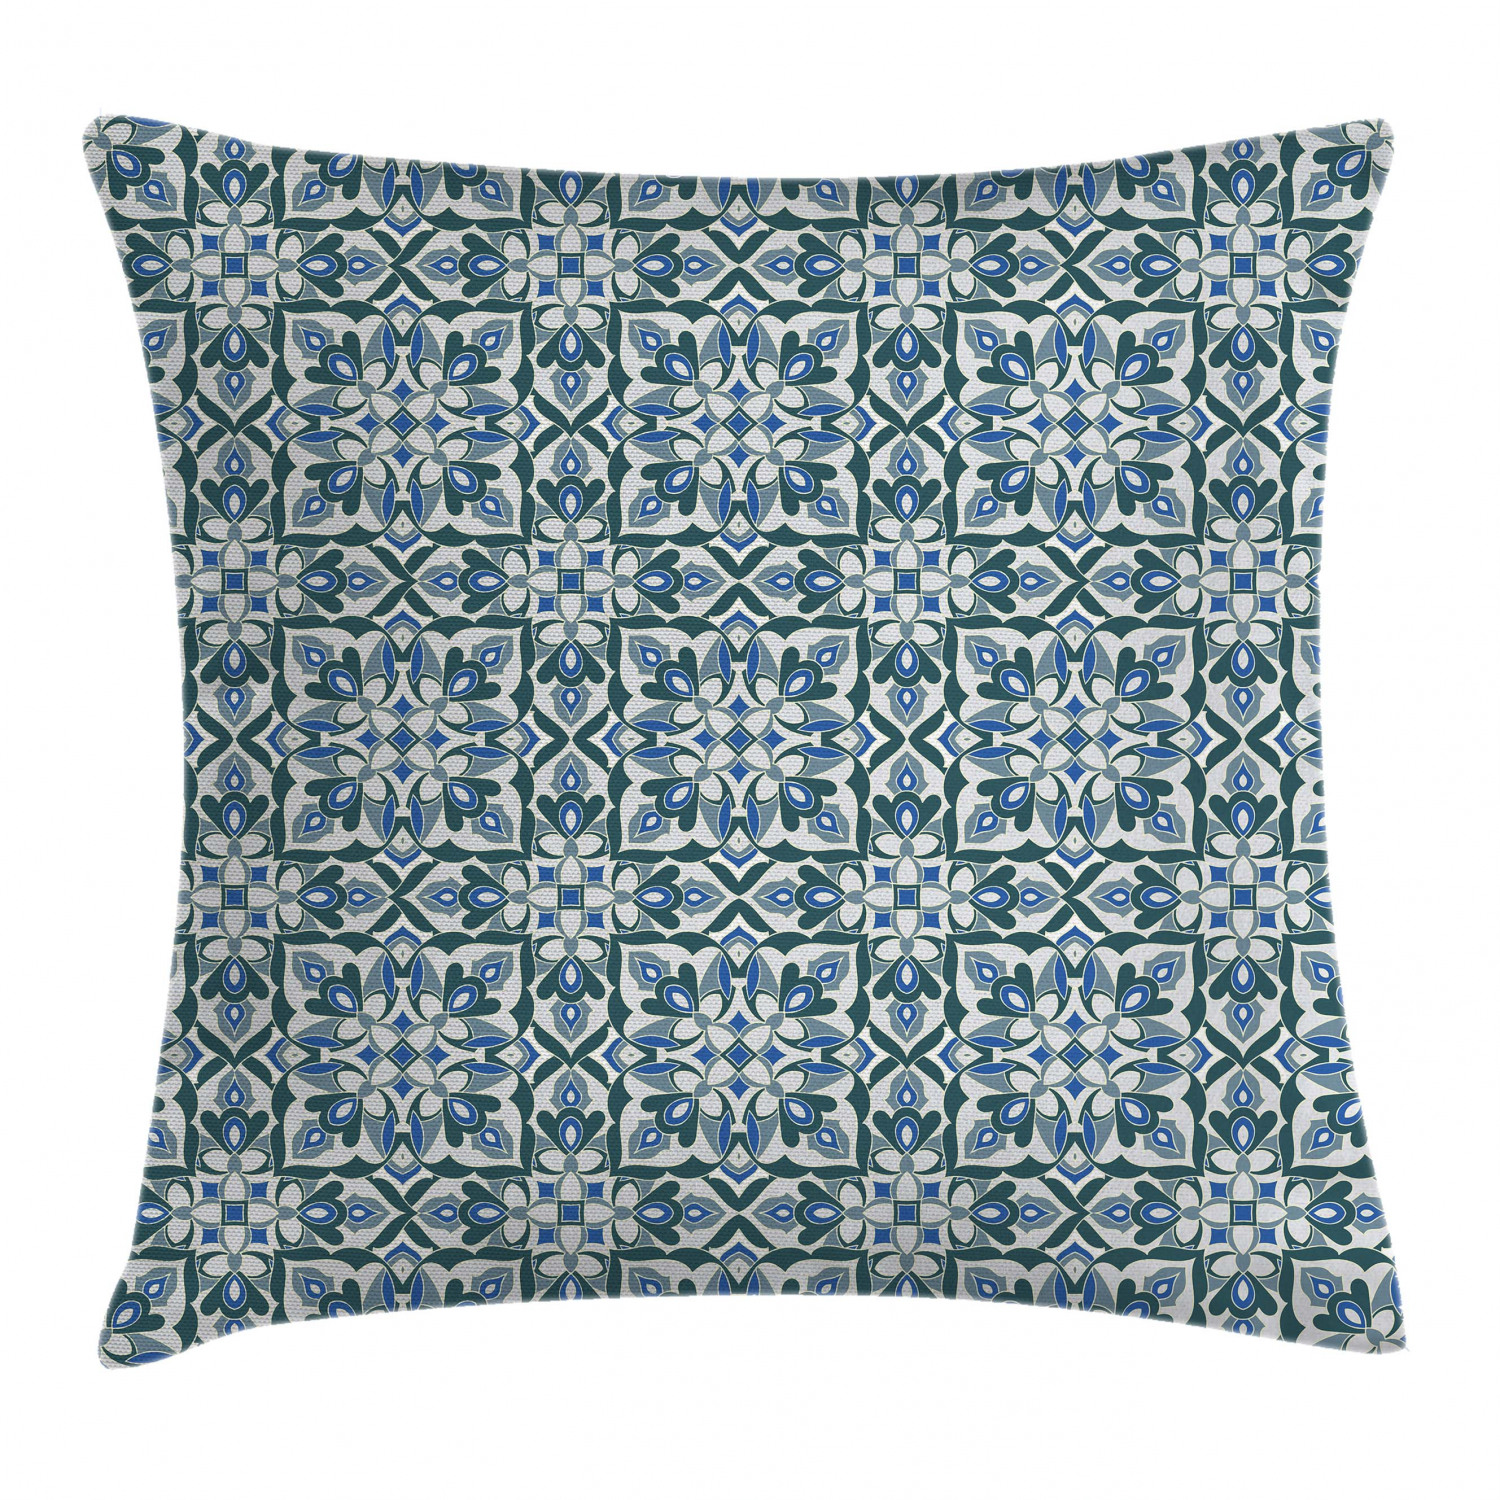 Vintage Throw Pillow Cases Cushion Covers Ambesonne Accent Decor 8 Sizes